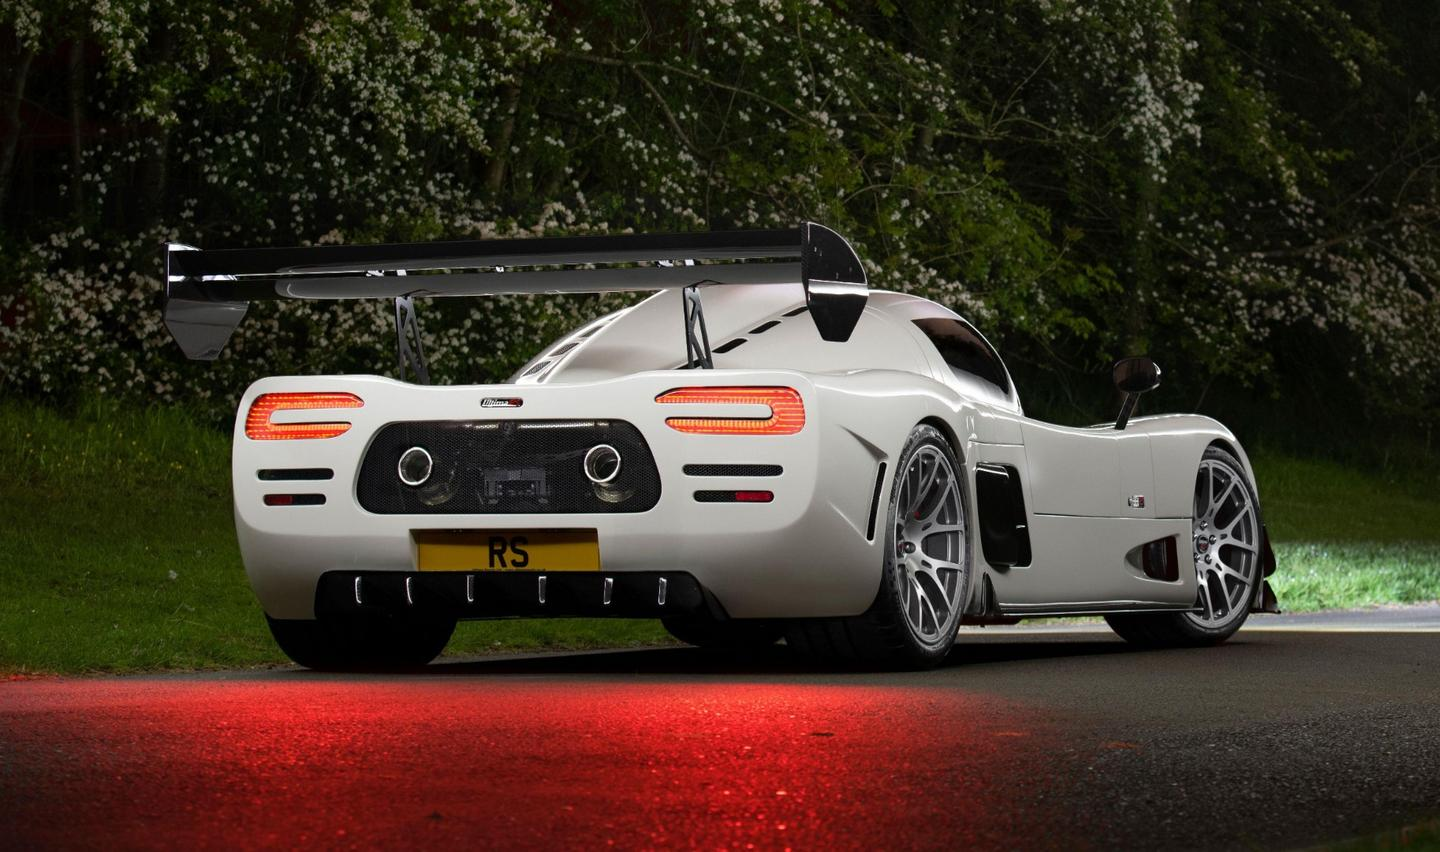 The new Ultima RS hypercar: 1200 horsepower and 250 mph for